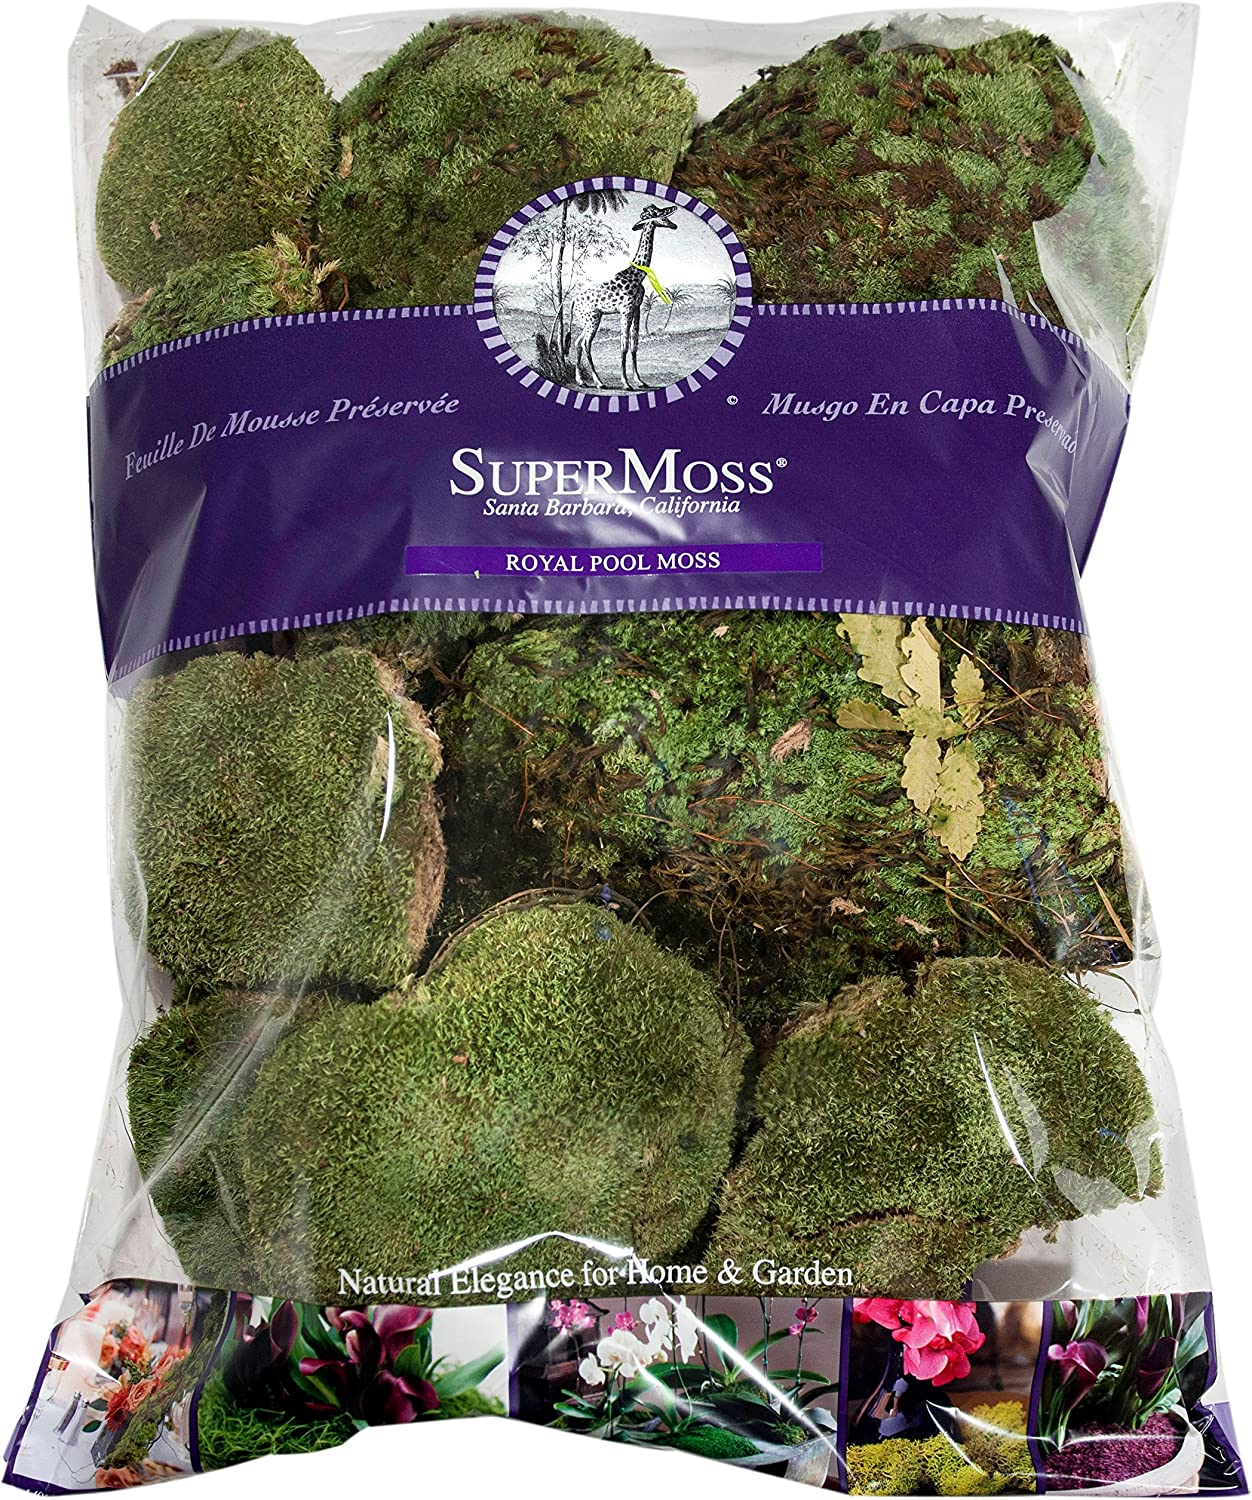 21881 Fresh Green 3lbs Royal Pool Moss Preserved SuperMoss